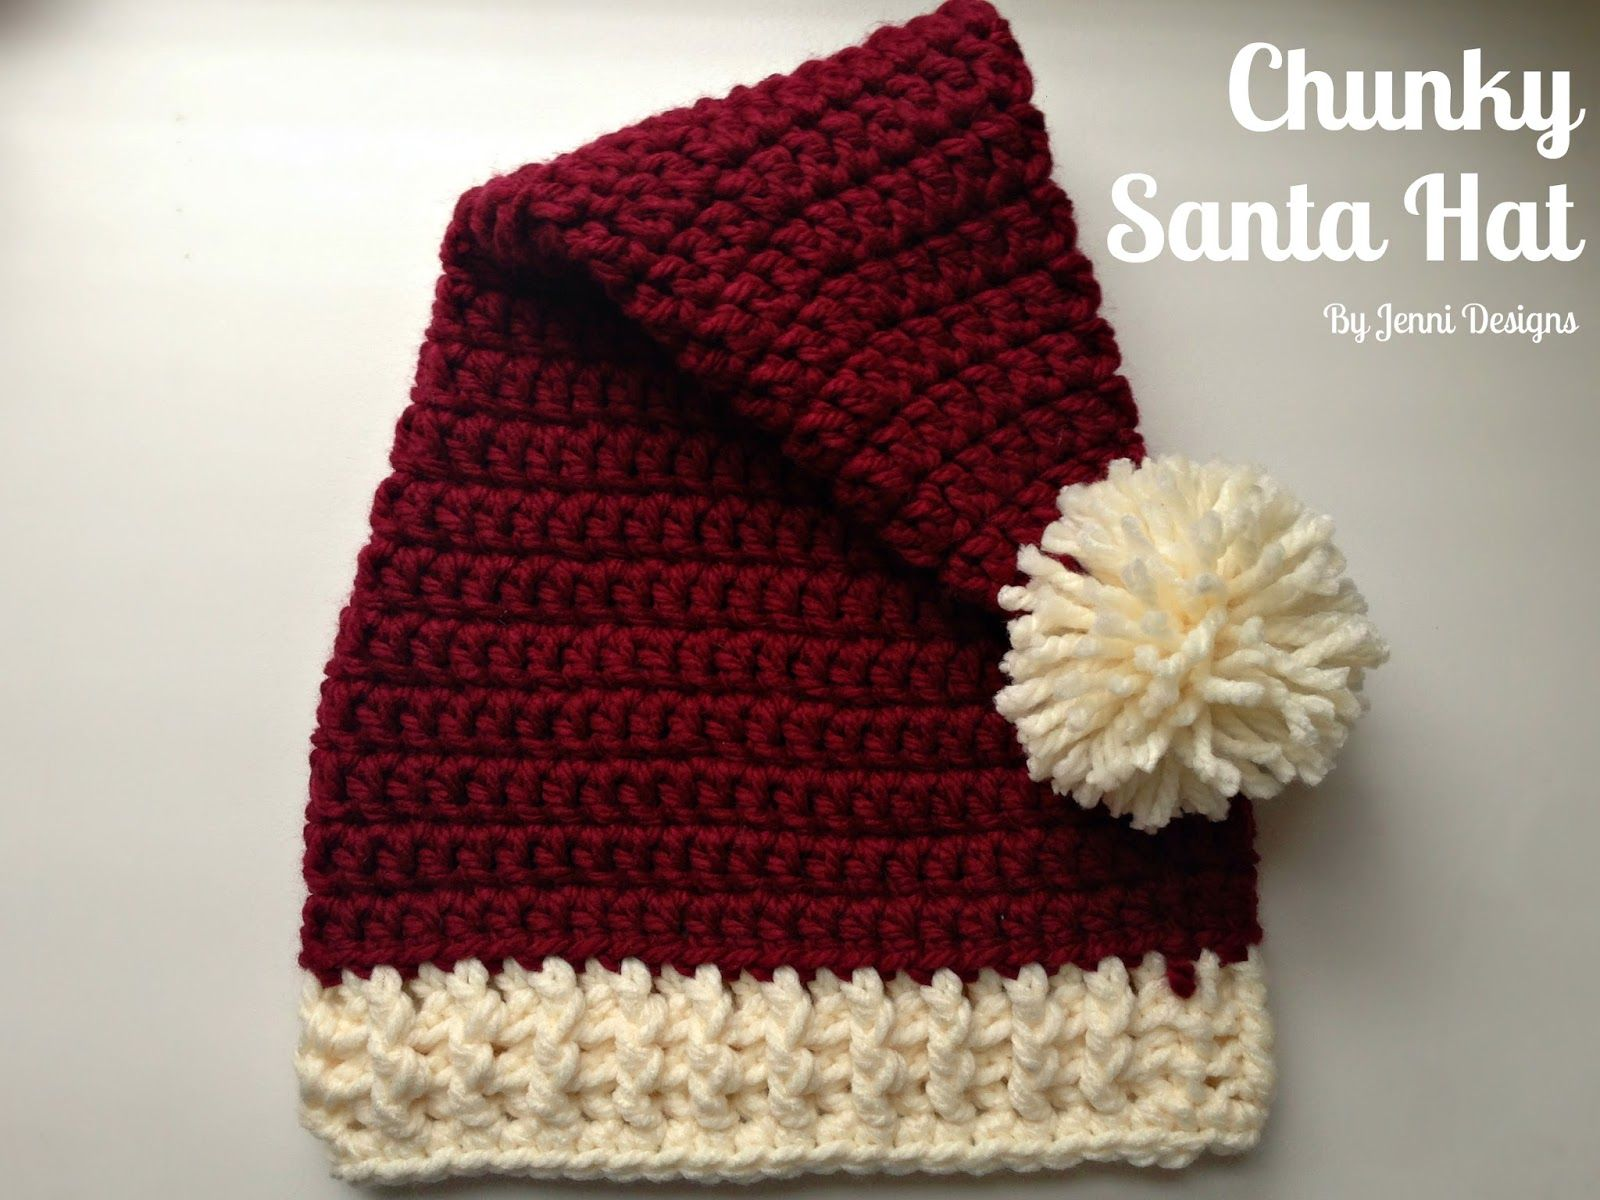 Free crochet pattern chunky santa hat in 4 sizes crochet hats free crochet pattern chunky santa hat in 4 sizes bankloansurffo Images